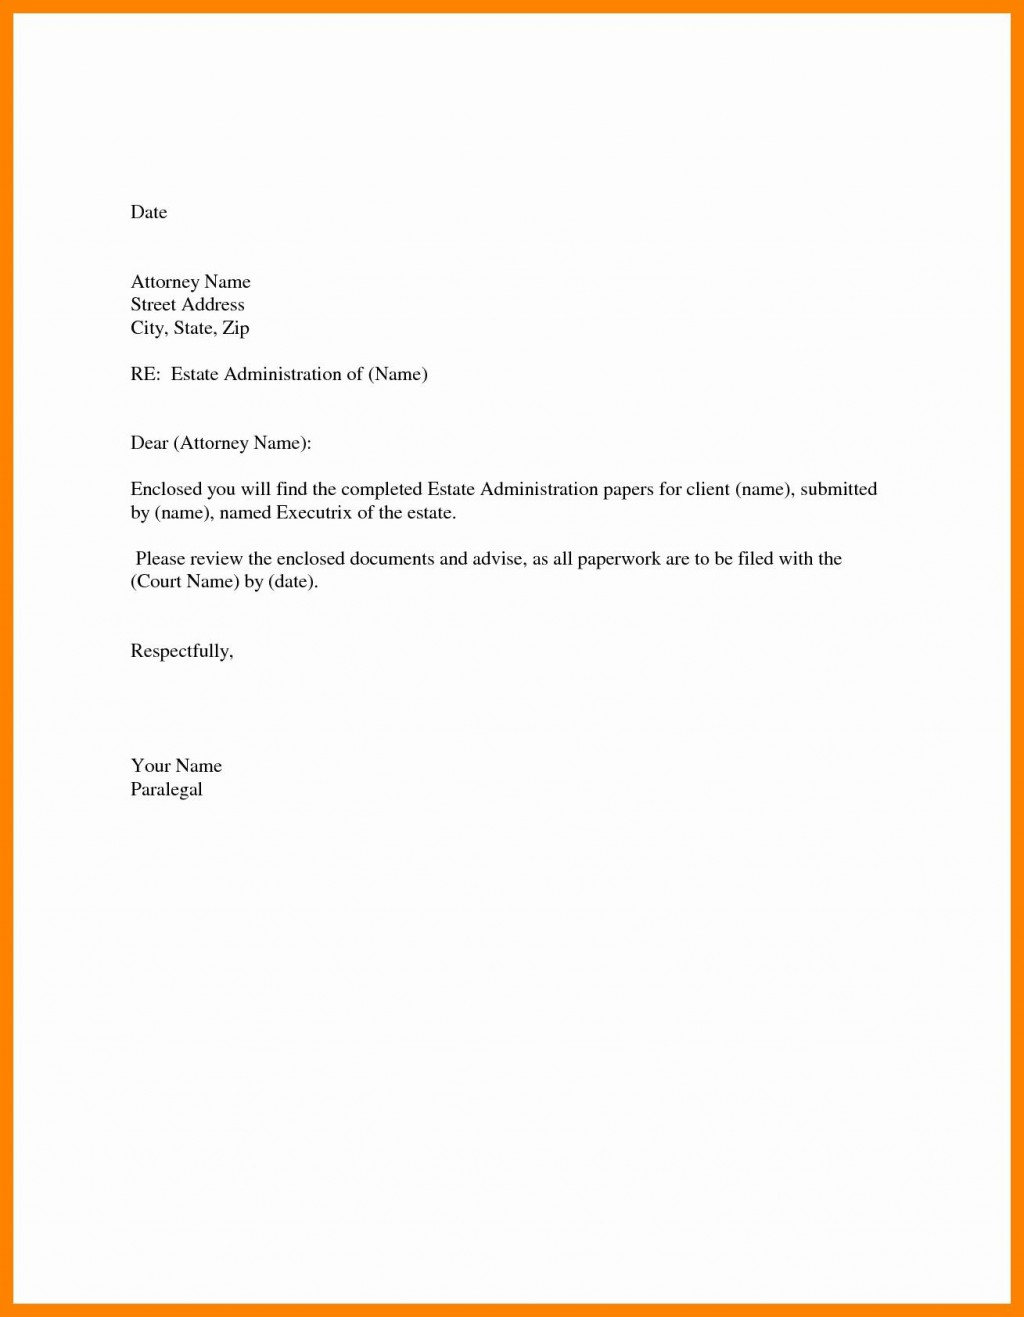 009 Fascinating Job Application Email Template High Def  Formal For Example Opportunitie SubjectLarge